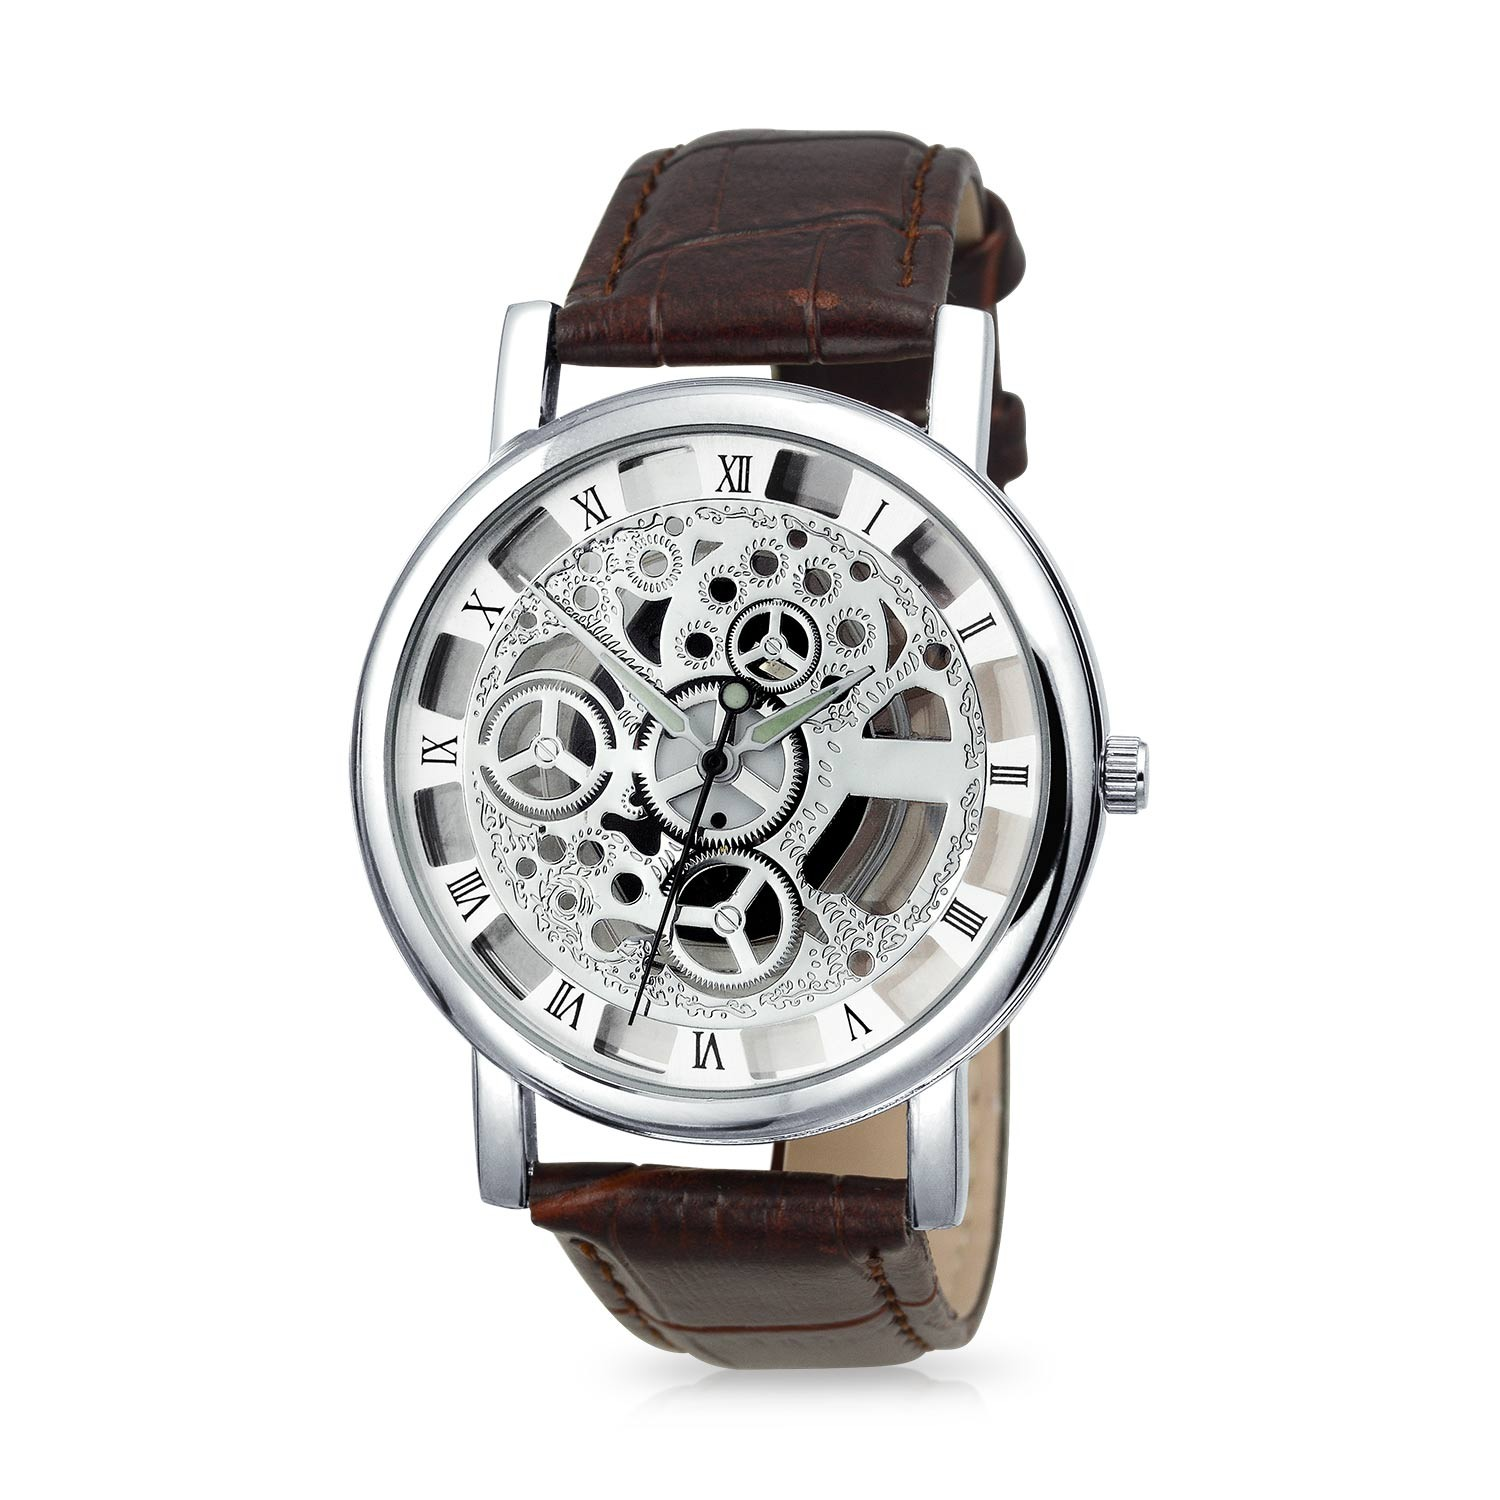 Luxury Watch Brands For Mens The Many Types In Choices For Mens Watches To Choose From